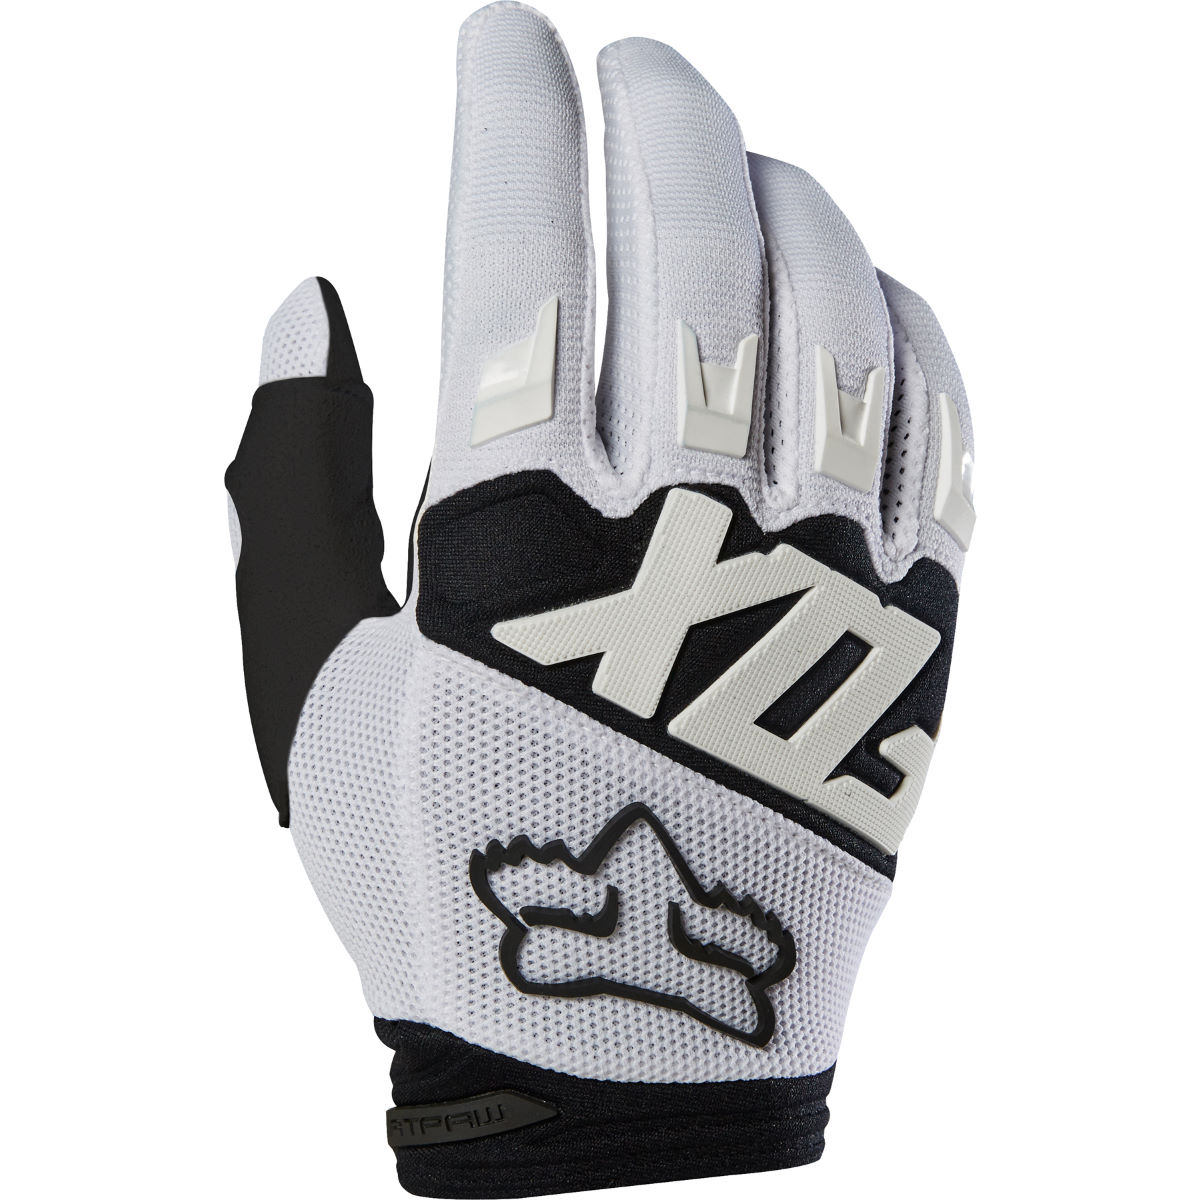 Gants Fox Racing Dirtpaw Race - S Blanc  Gants